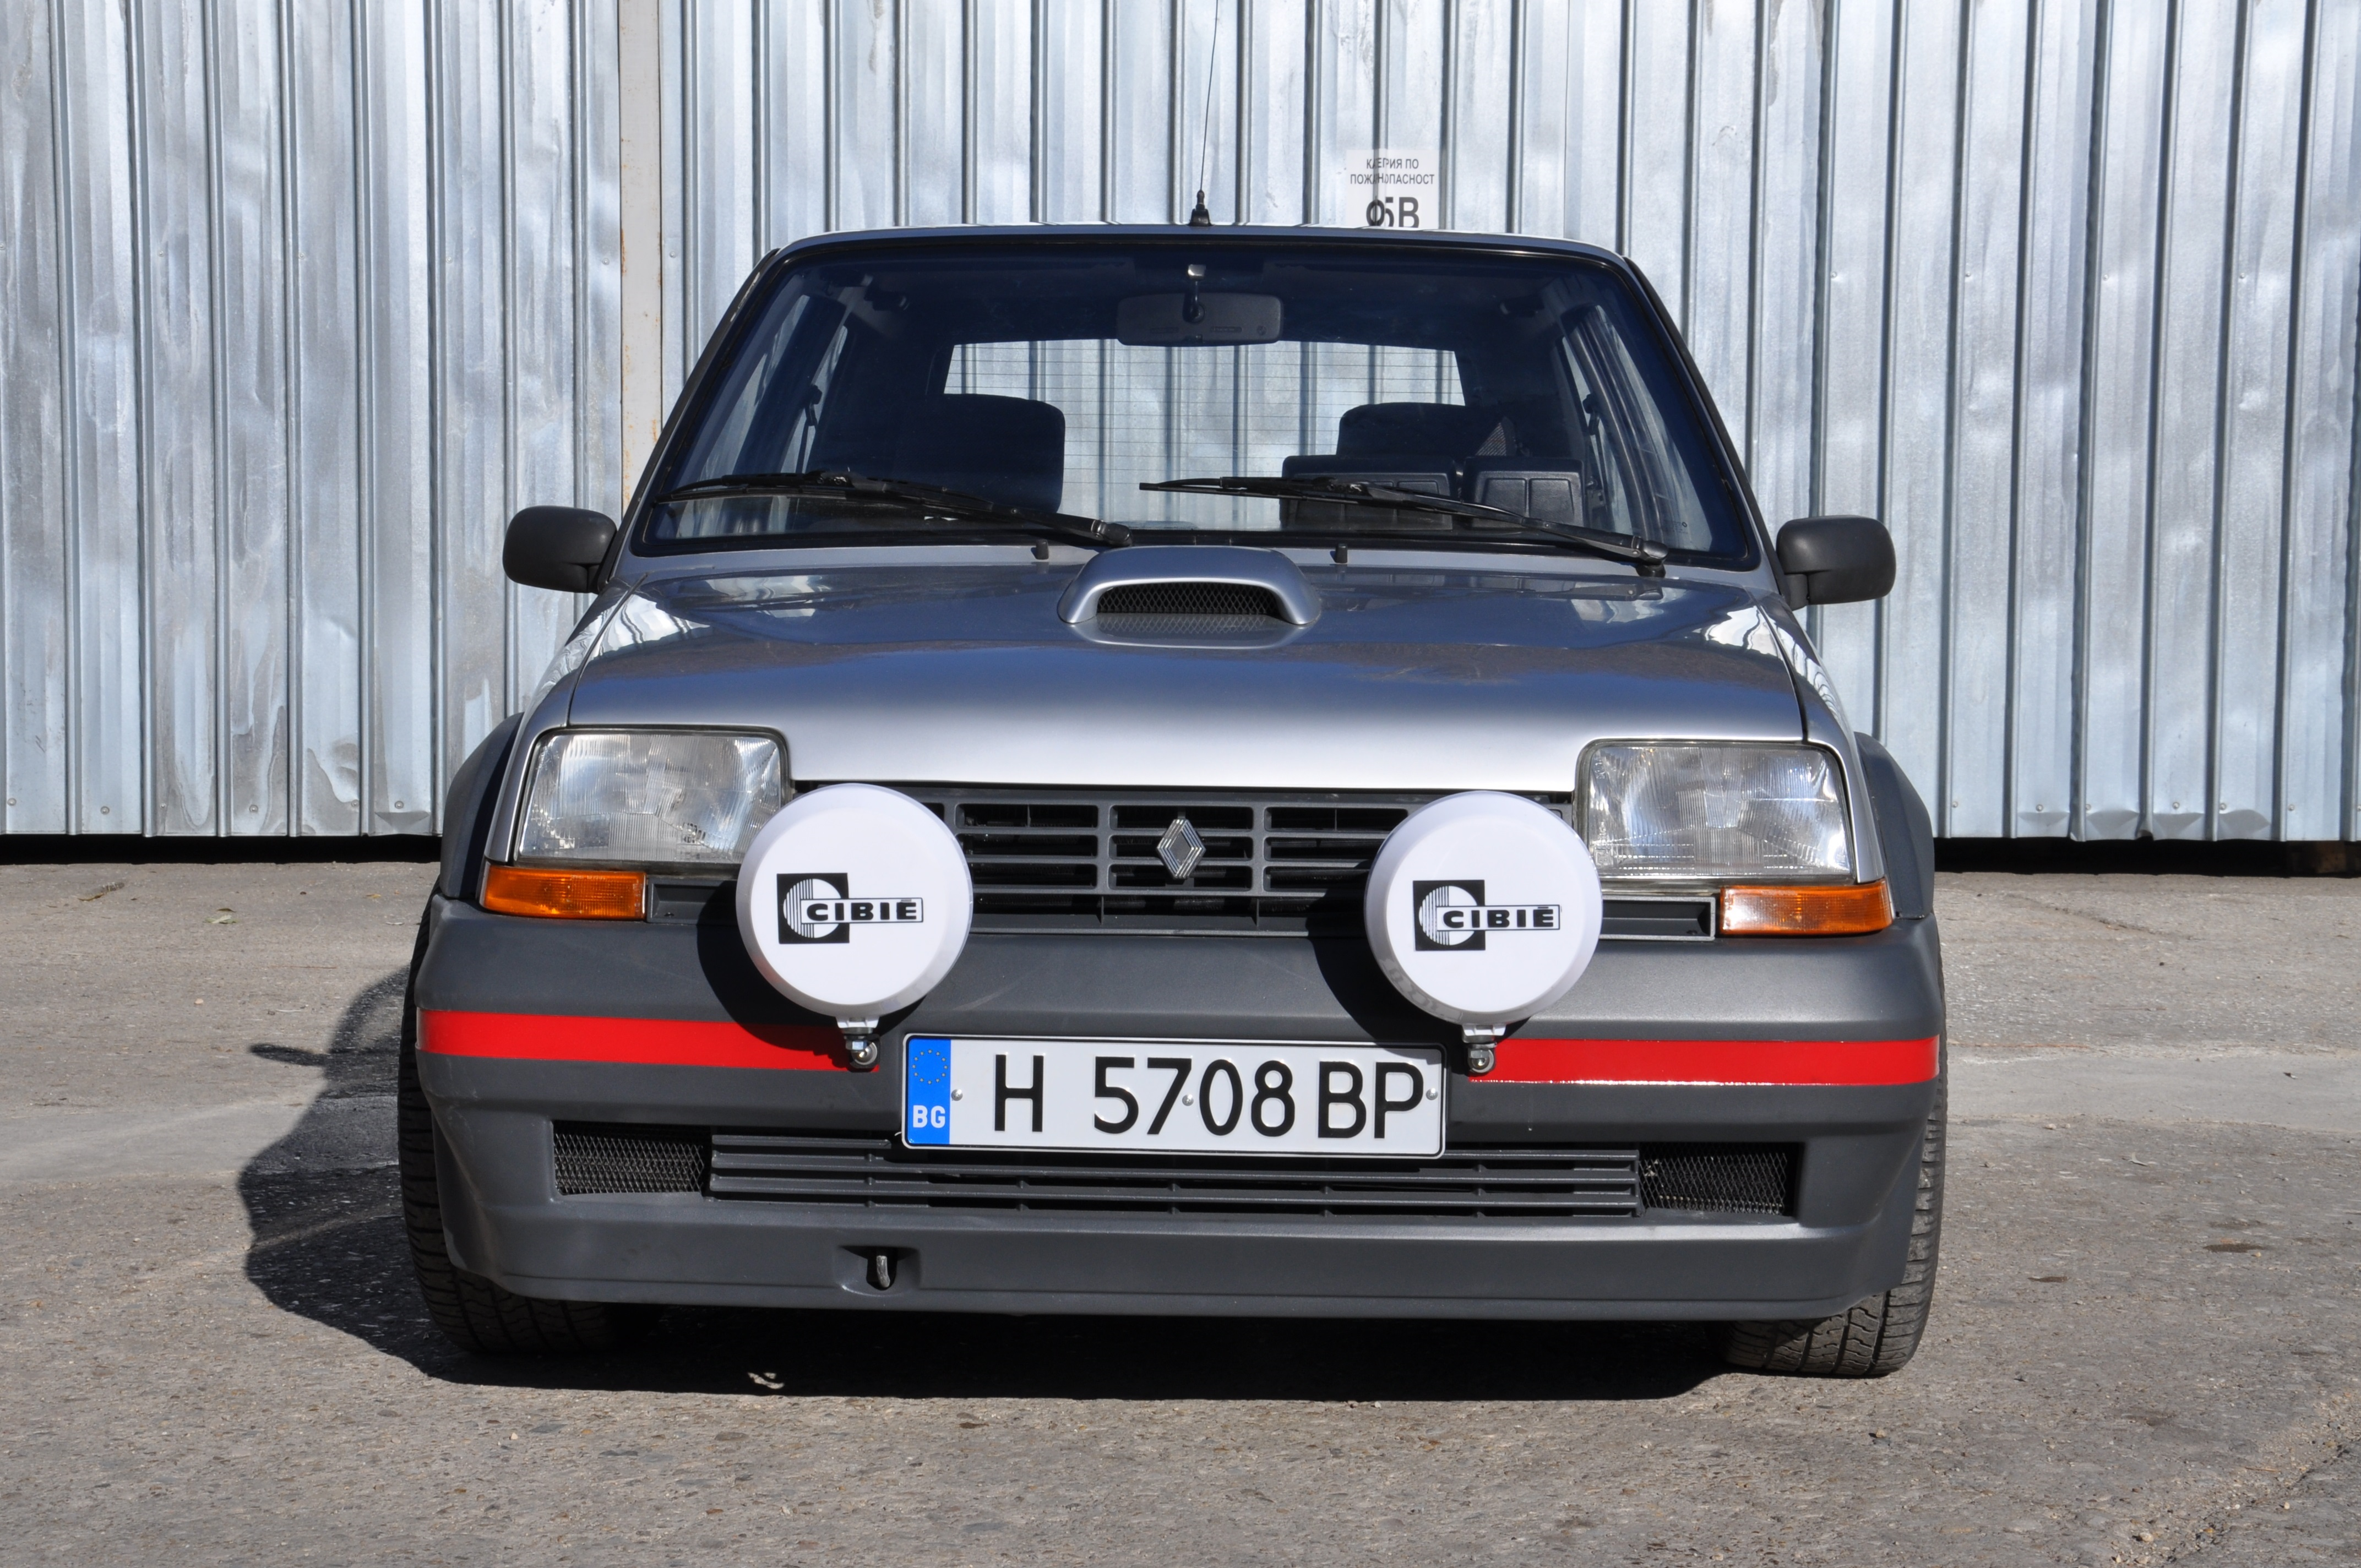 renault 5 gt turbo coupe rally cars for sale at raced rallied rally cars for sale race. Black Bedroom Furniture Sets. Home Design Ideas